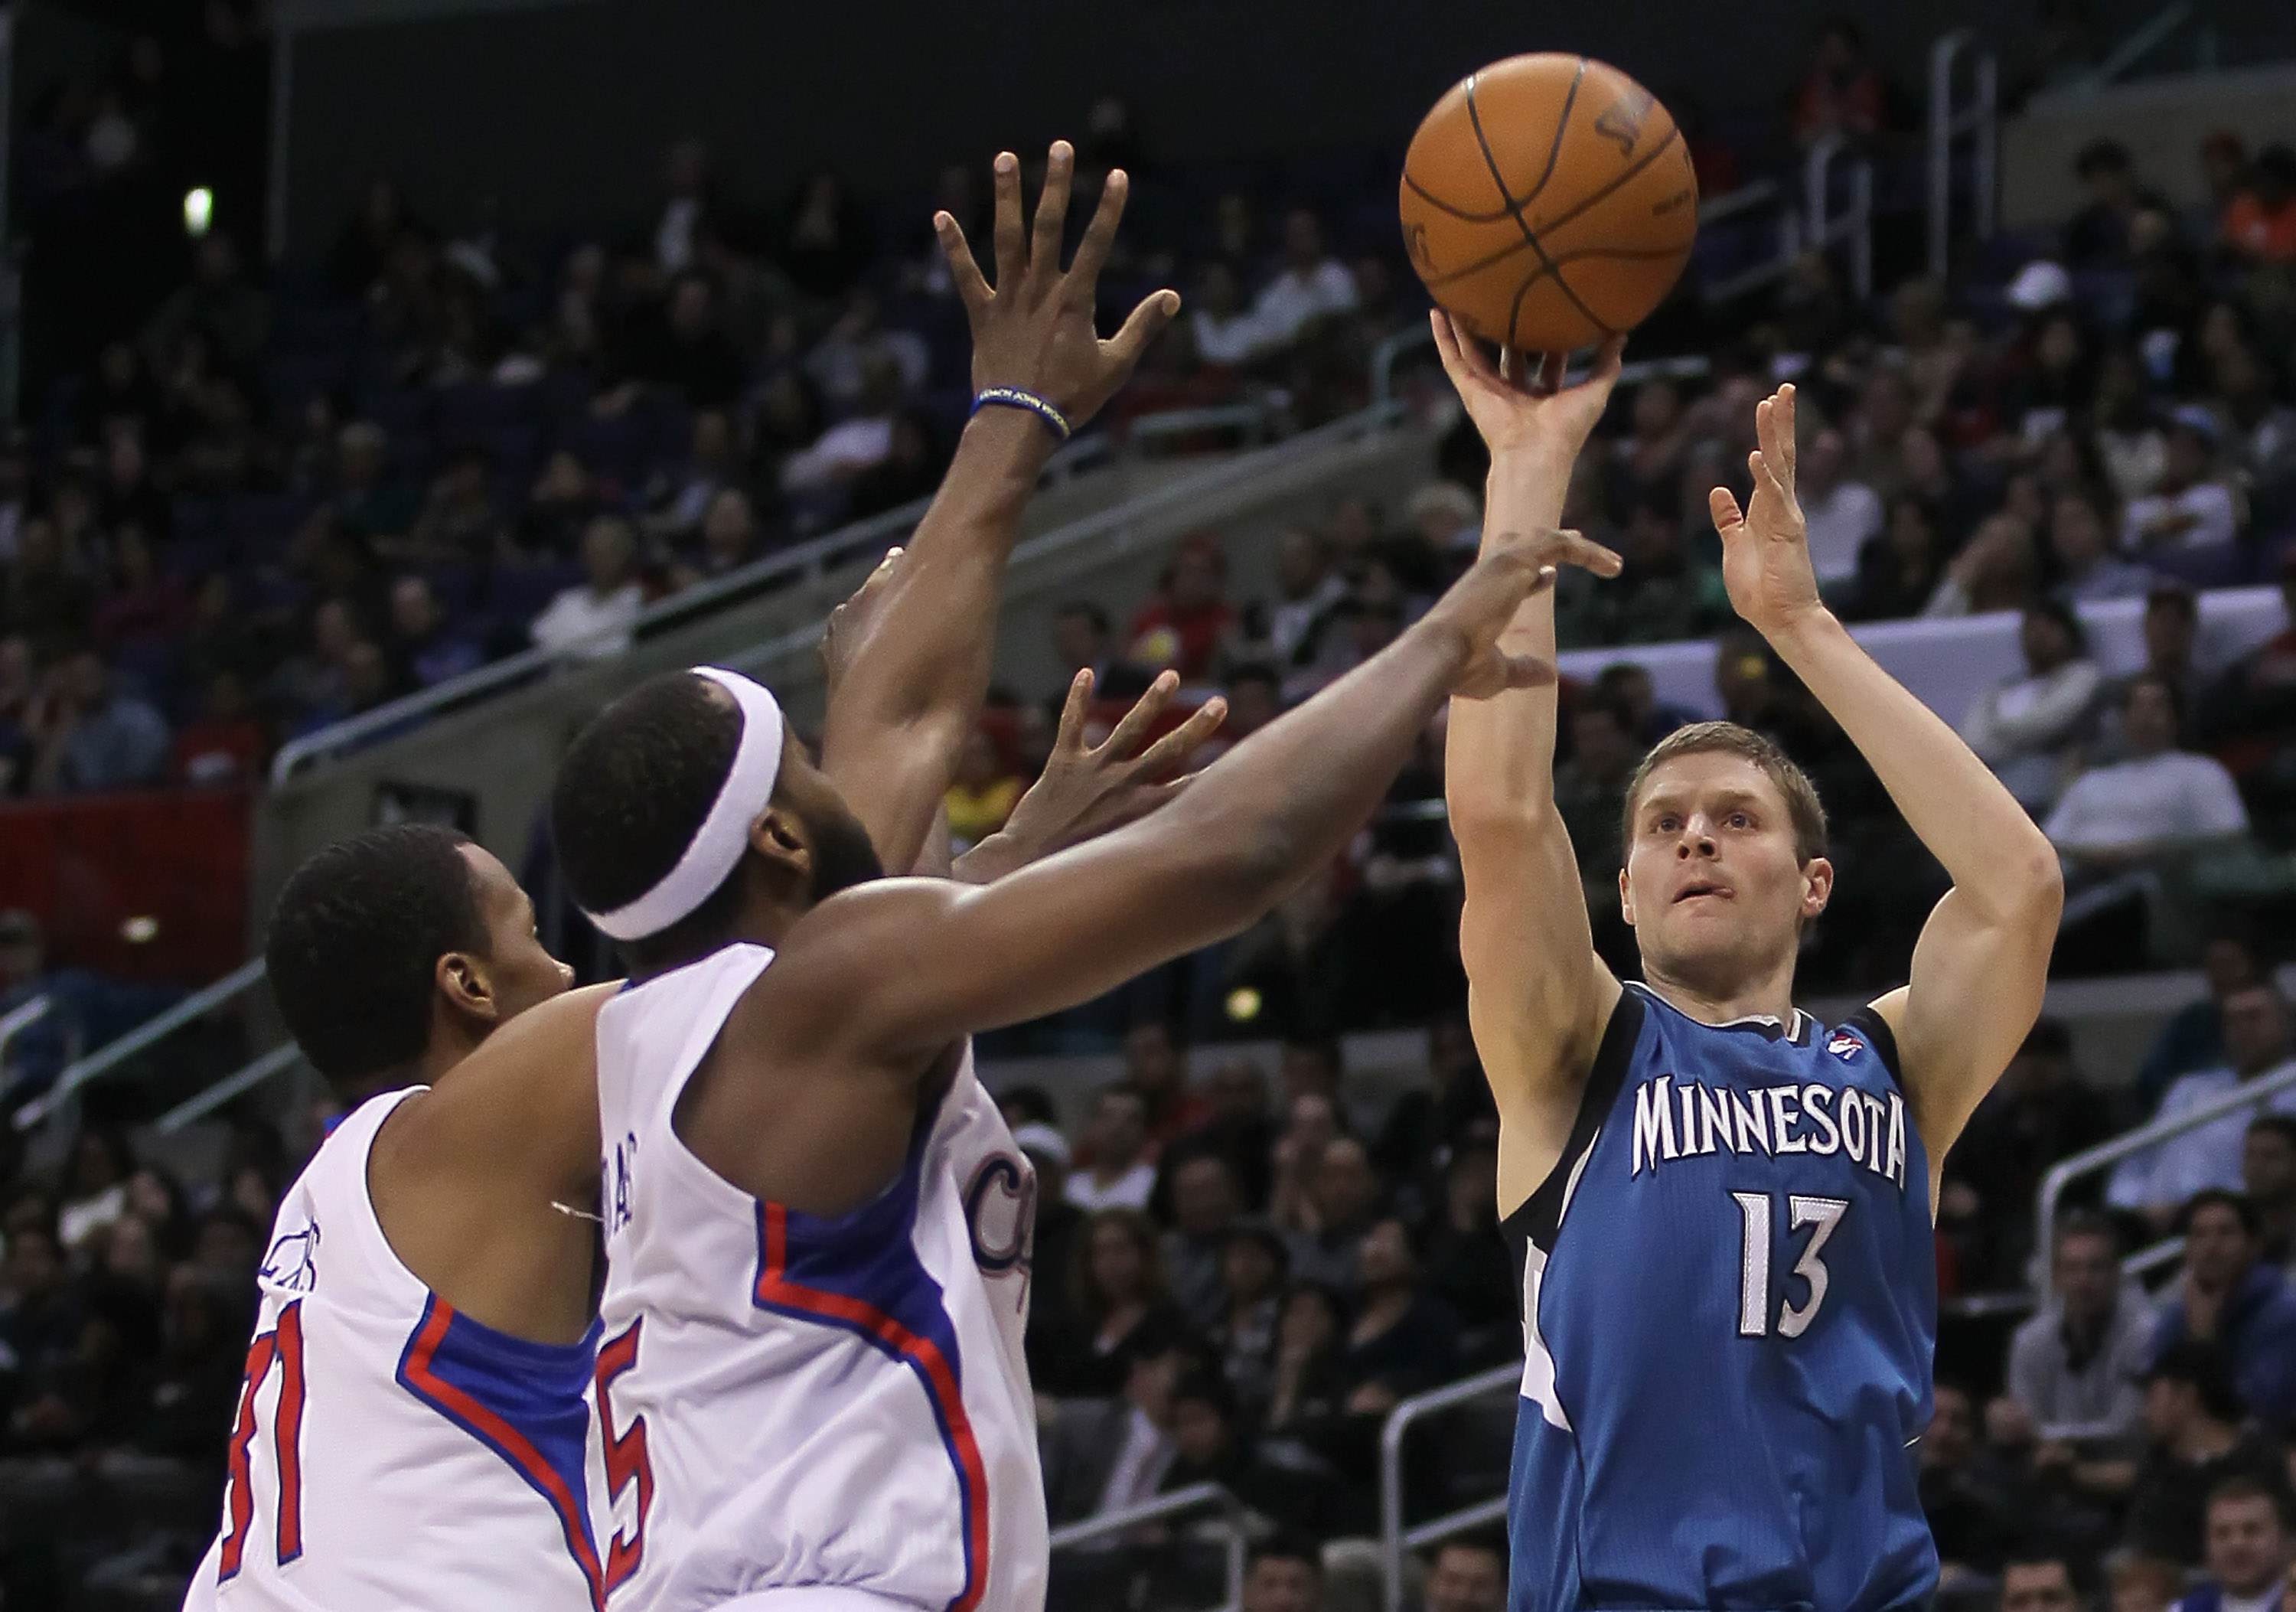 LOS ANGELES, CA - DECEMBER 20:  Luke Ridnour #13 of the Minnesota Timberwolves shoots over Baron Davis #5 and Jarron Collins #31 of the Los Angeles Clippers during the first half at Staples Center on December 20, 2010 in Los Angeles, California. NOTE TO U